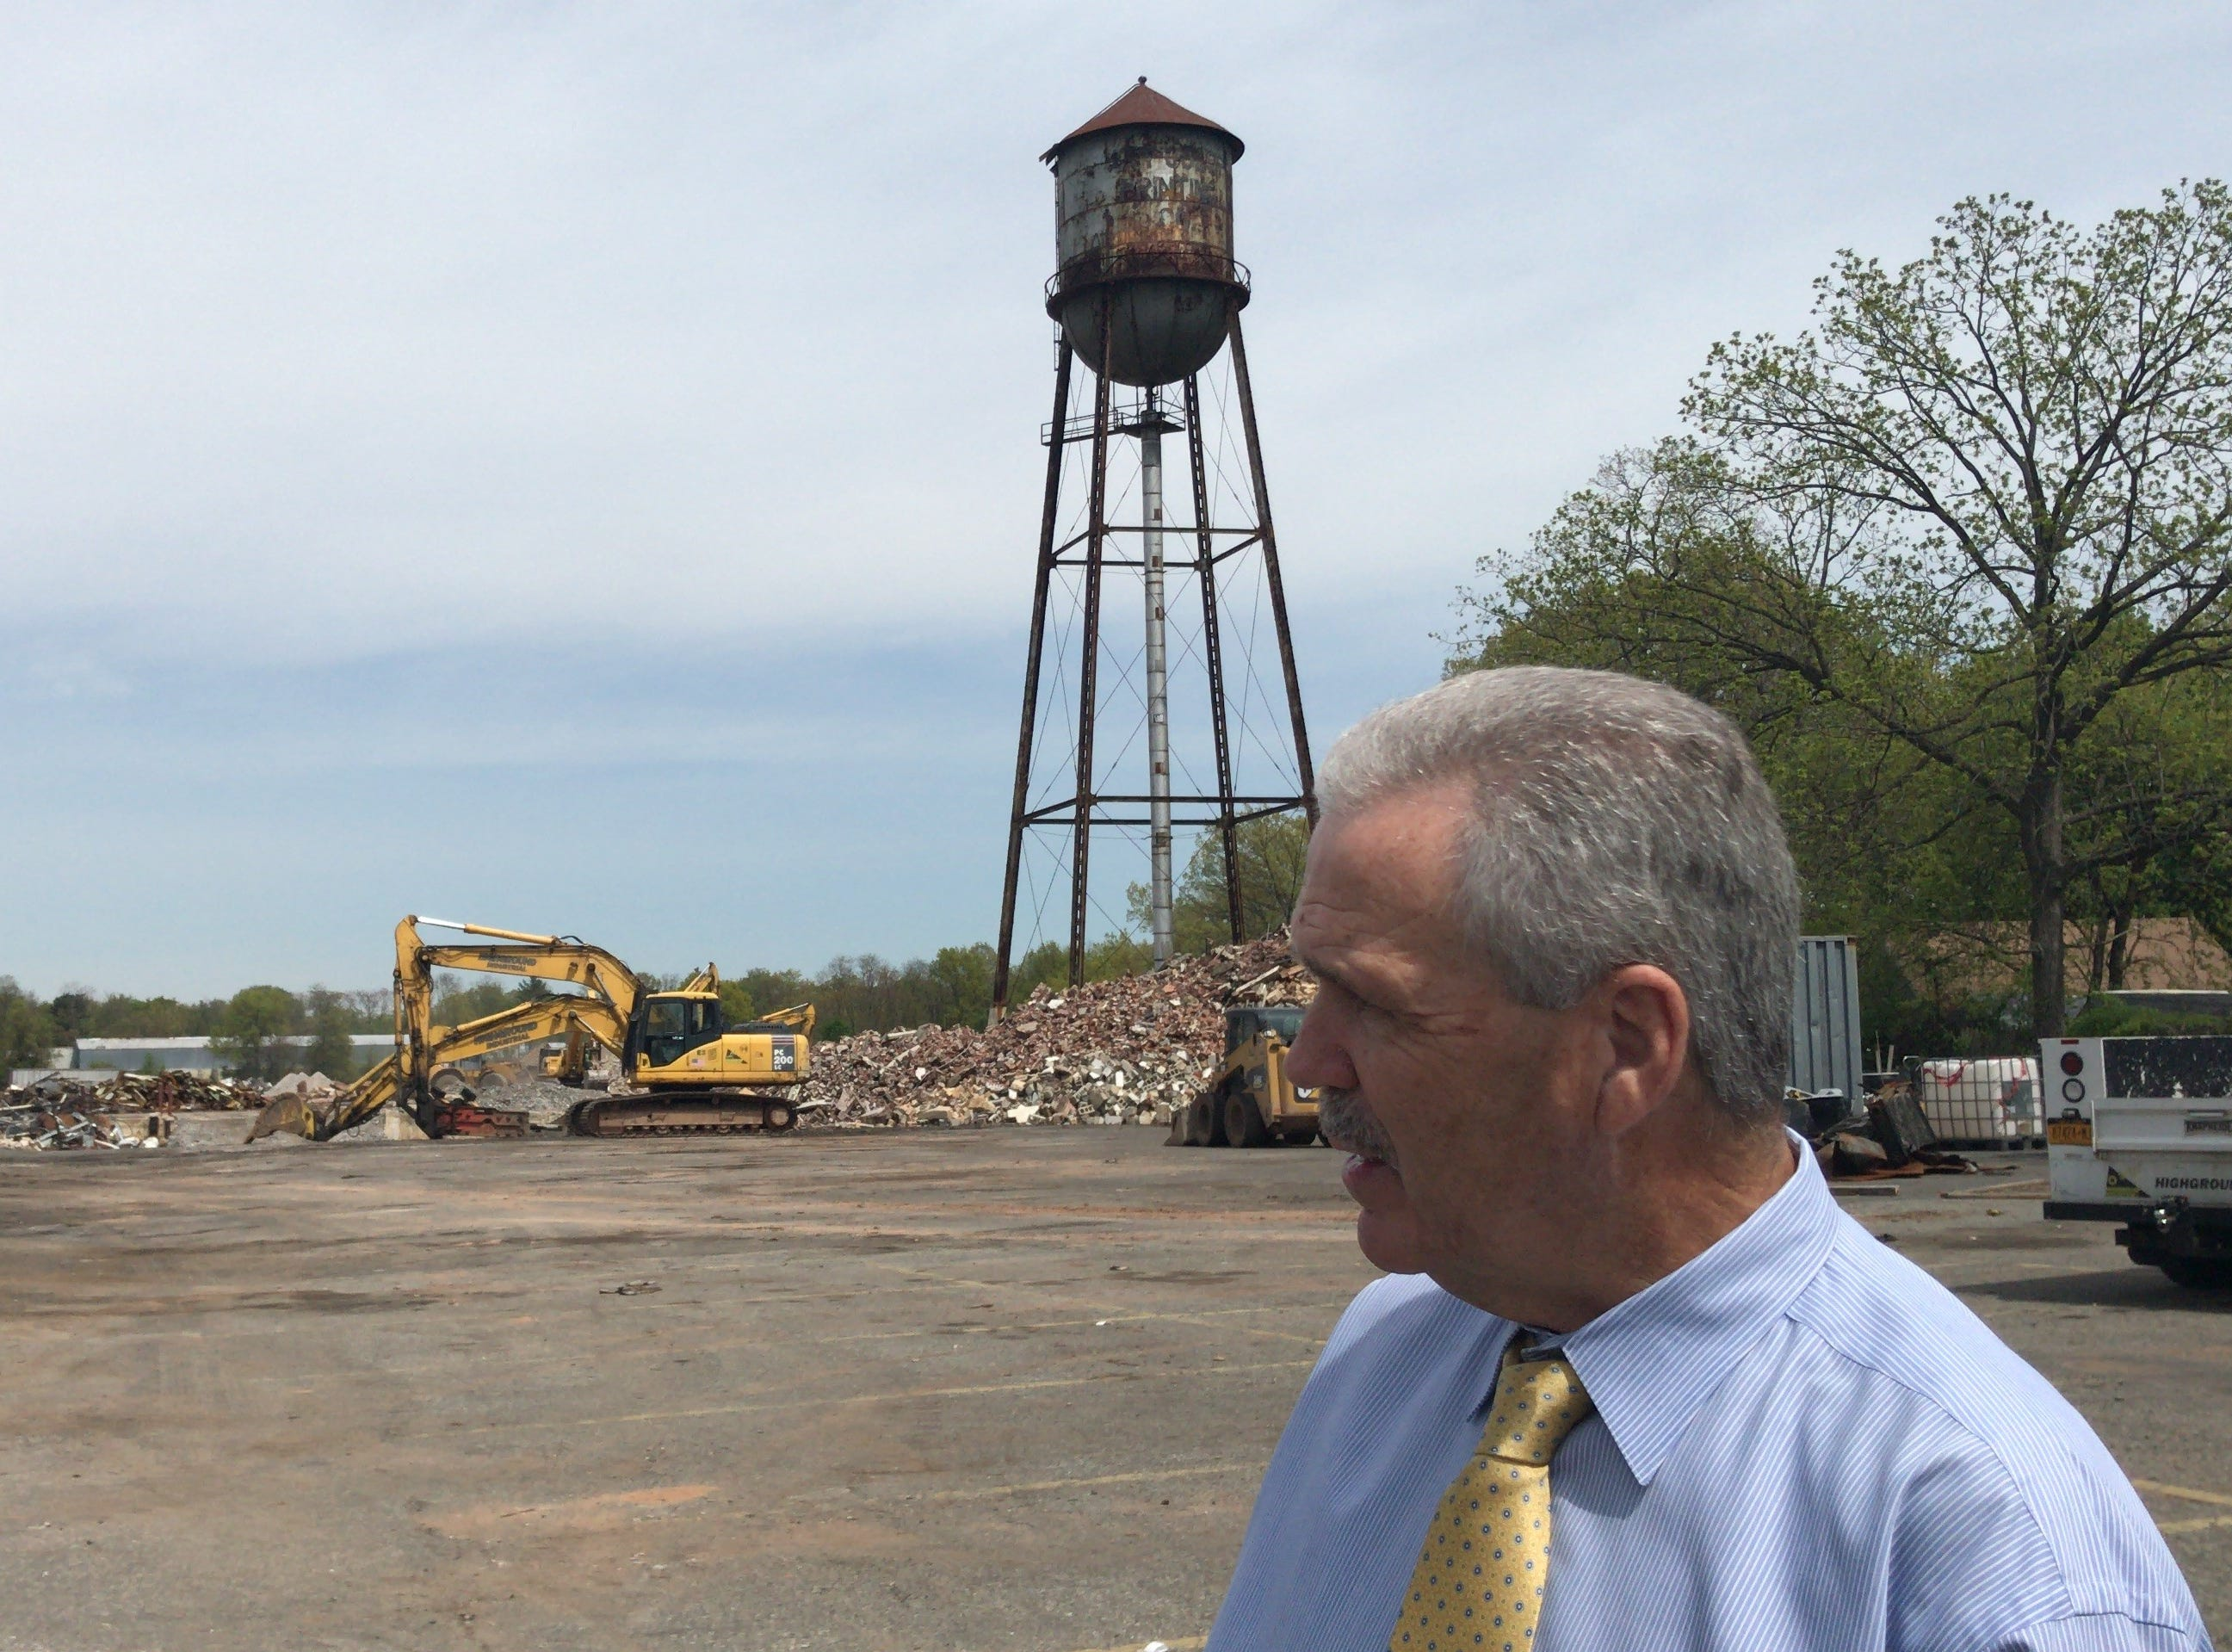 Dunellen Mayor Robert J. Seader stands in front the demolished Art Color plant on South Washington Avenue that soon will be redeveloped into Dunellen Station, a multi-use property that will consist of  252 apartments, 130 townhouses and 9,200-square-feet of retail.